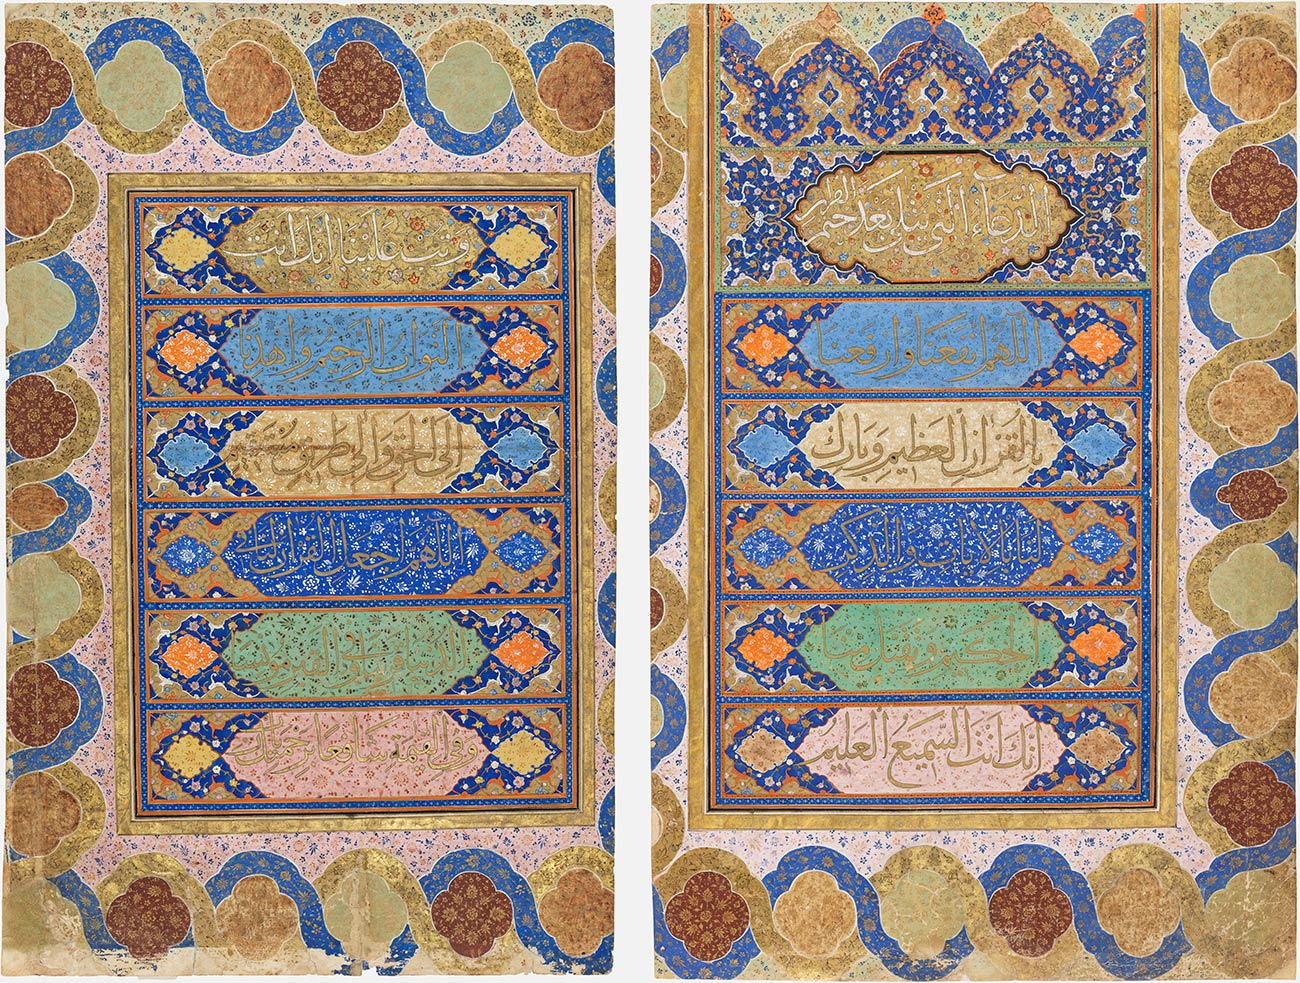 Brightly colored illustrations in blues and golds, with arabic text.